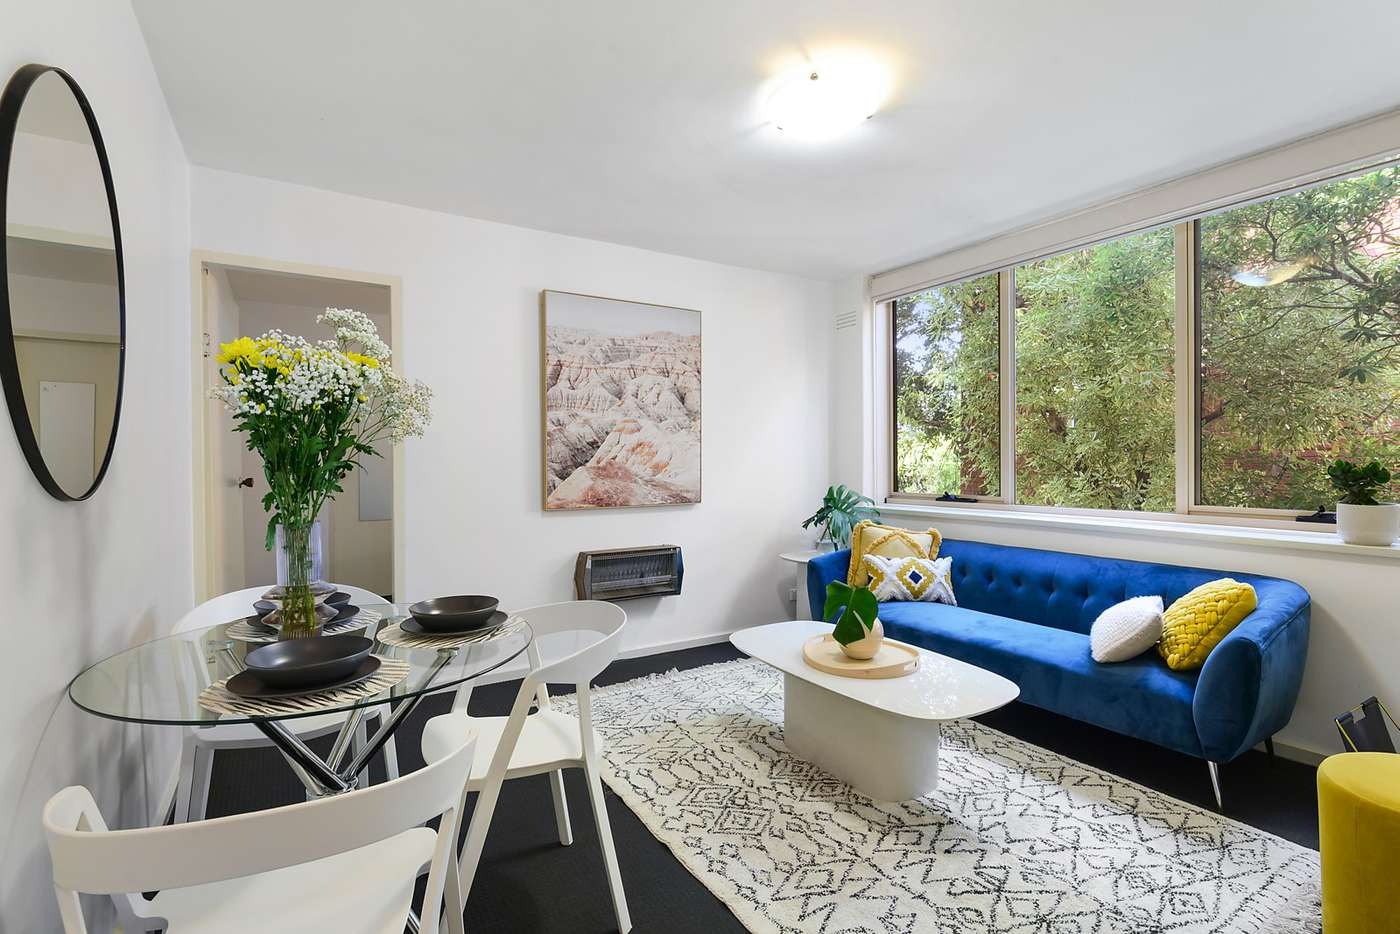 Main view of Homely apartment listing, 6/5 Barnsbury Road, South Yarra VIC 3141